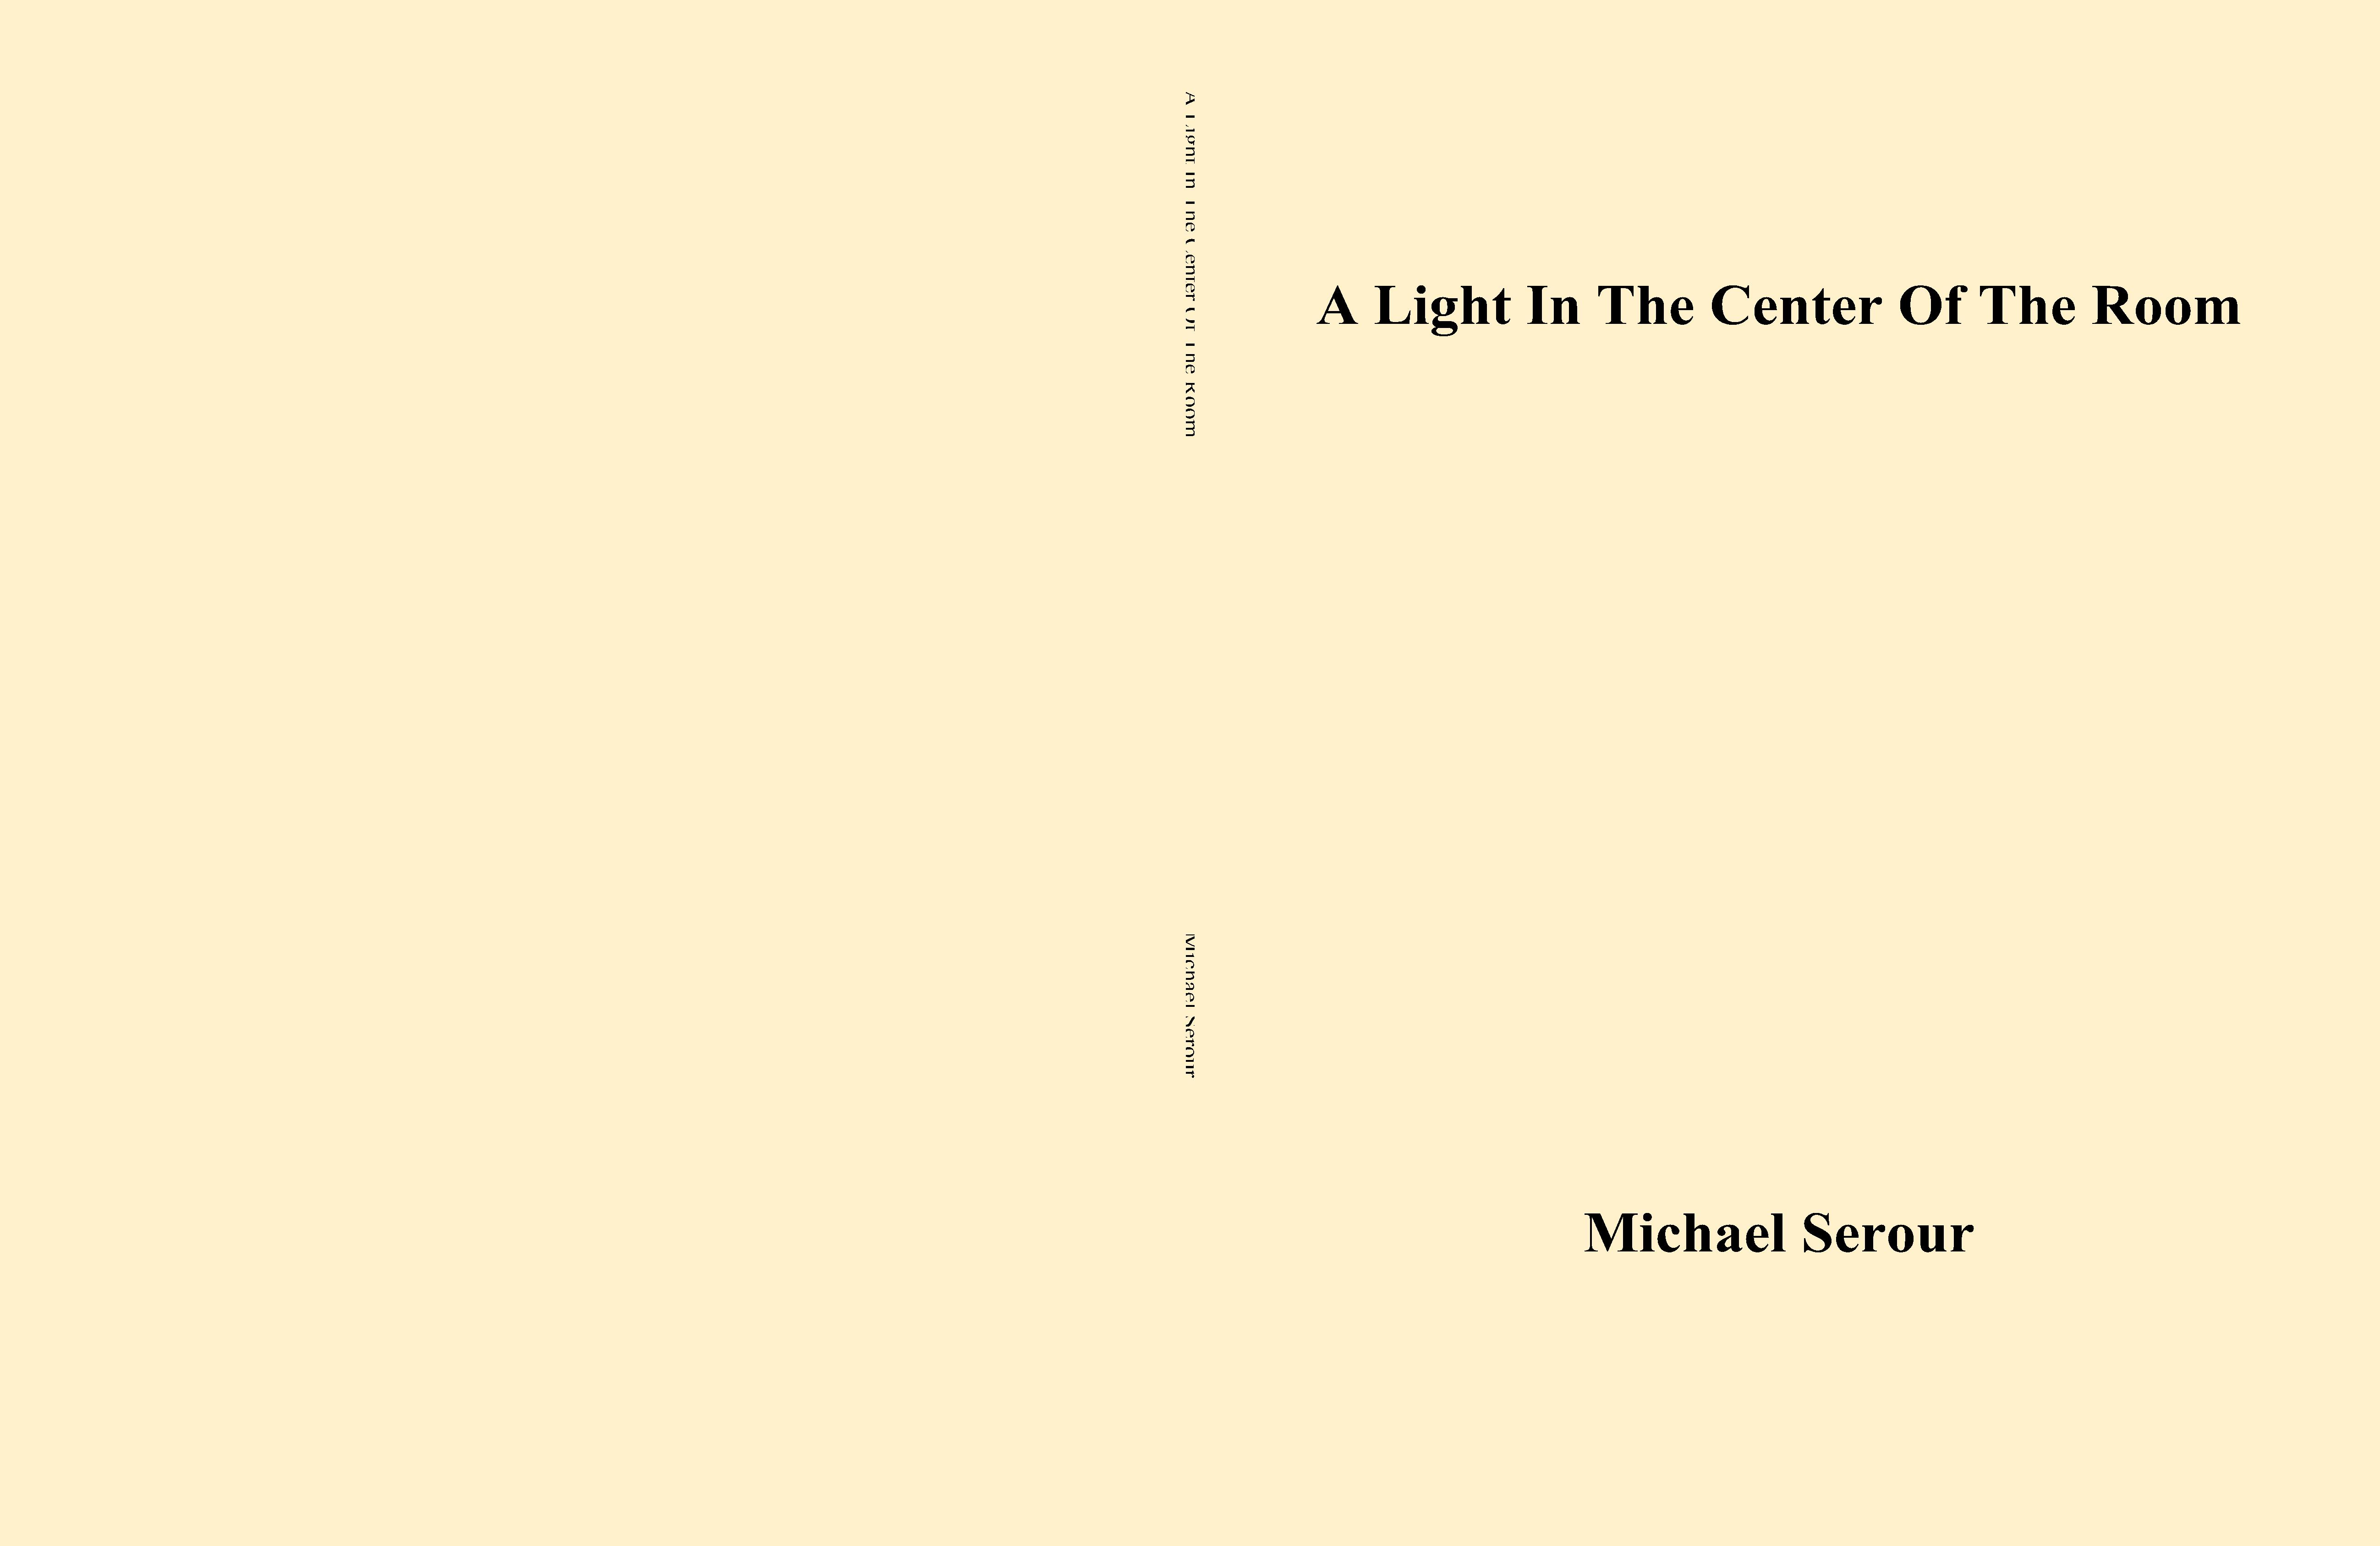 A Light In The Center Of The Room cover image